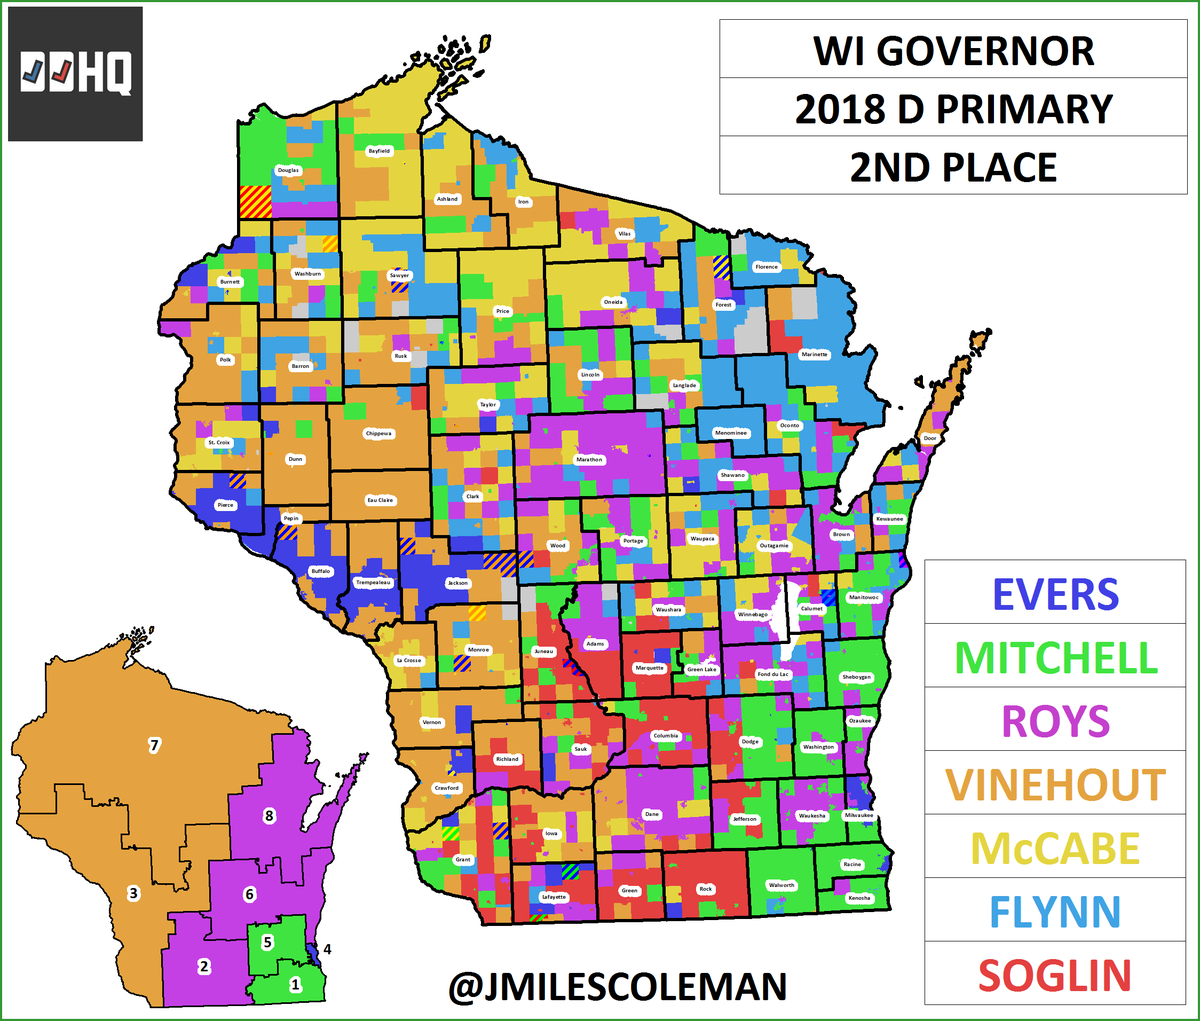 Charles Franklin On Twitter This Is The Best Map Of The Wisconsin